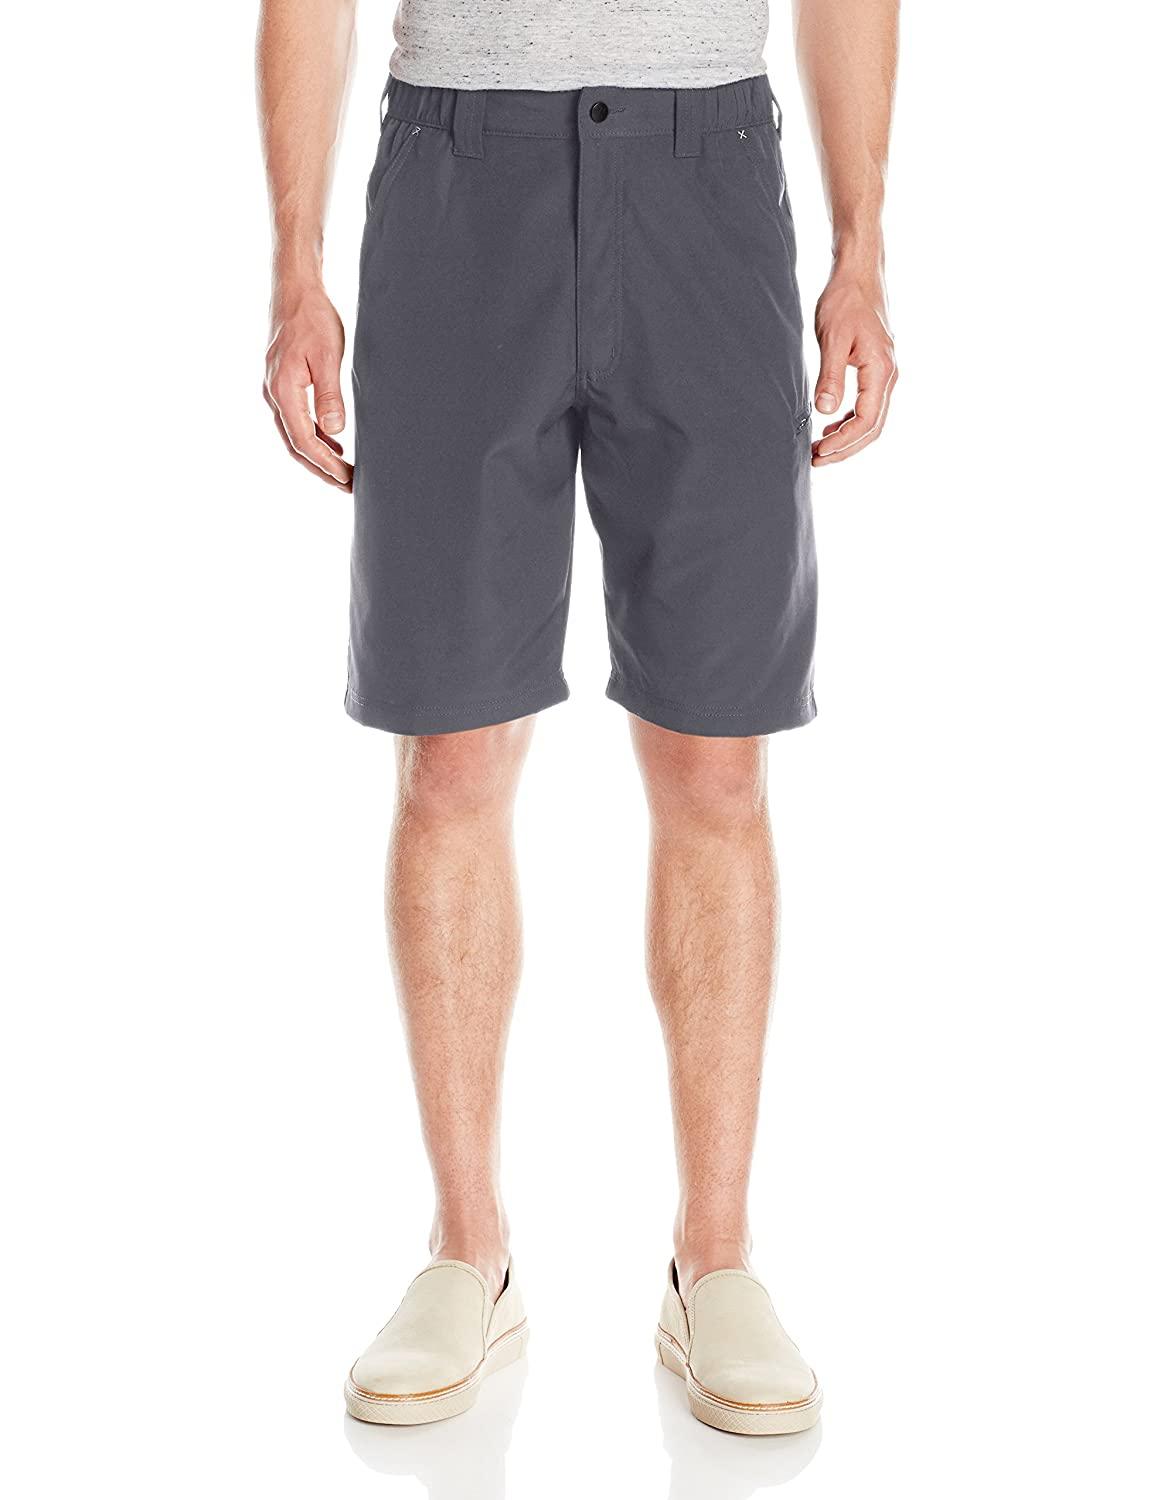 Wrangler Mens Authentics Performance Side Elastic Utility Short ZM926